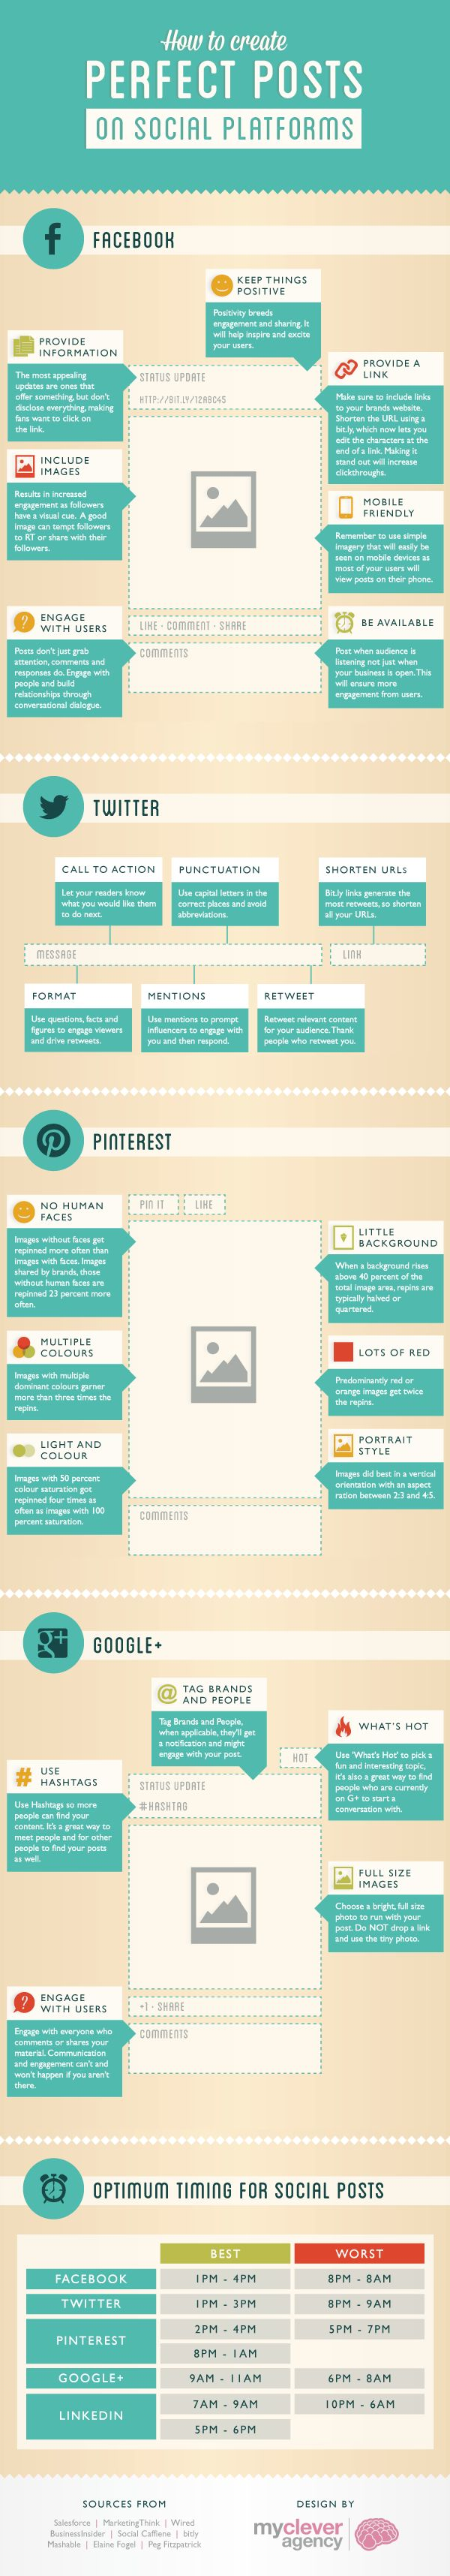 Did you know that #red or #orange images are more likely to be repinned? #infographic